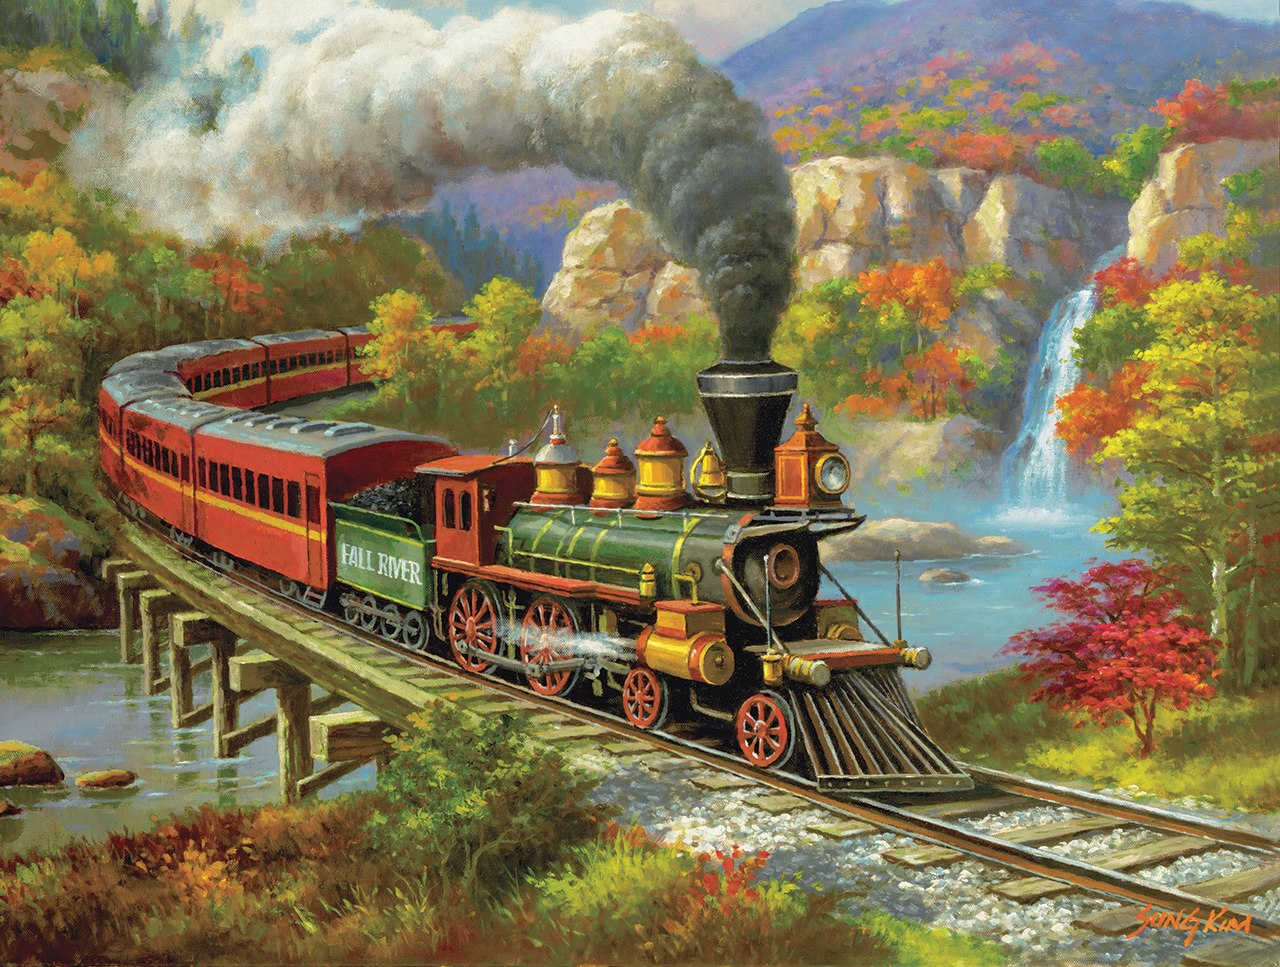 Fall River Ltd. - 500pc Jigsaw Puzzle By Sunsout  			  					NEW